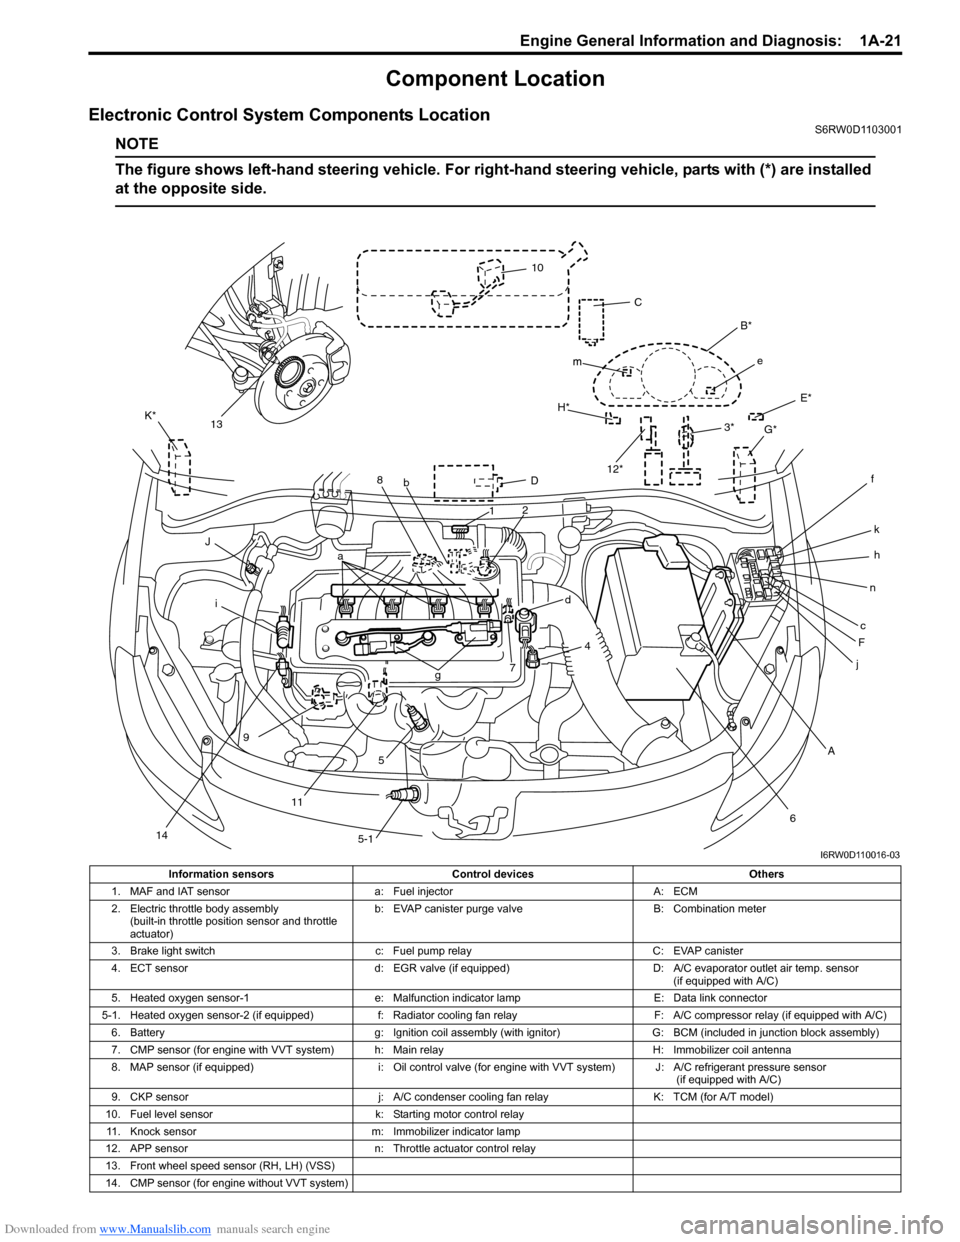 Suzuki Sx4 2006 1 G Service Workshop Manual